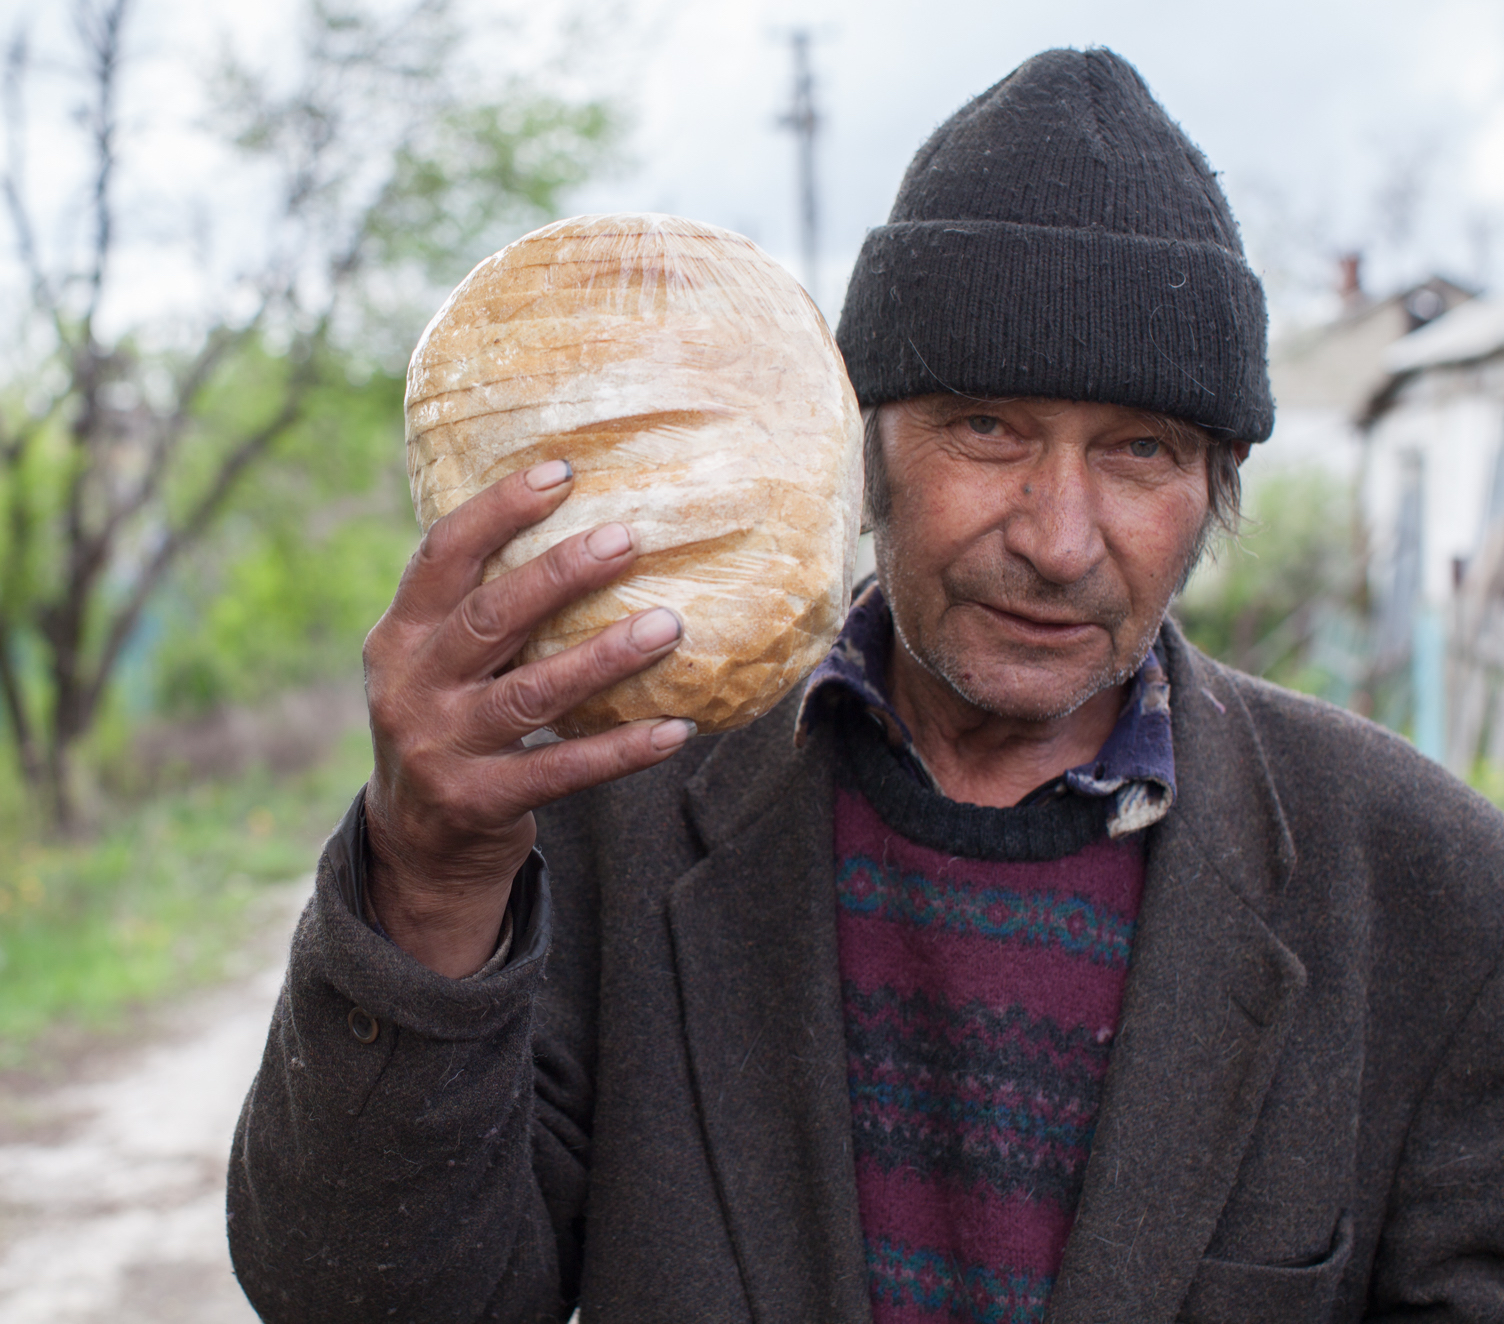 Refugee man from eastern Ukraine holding a loaf of bread